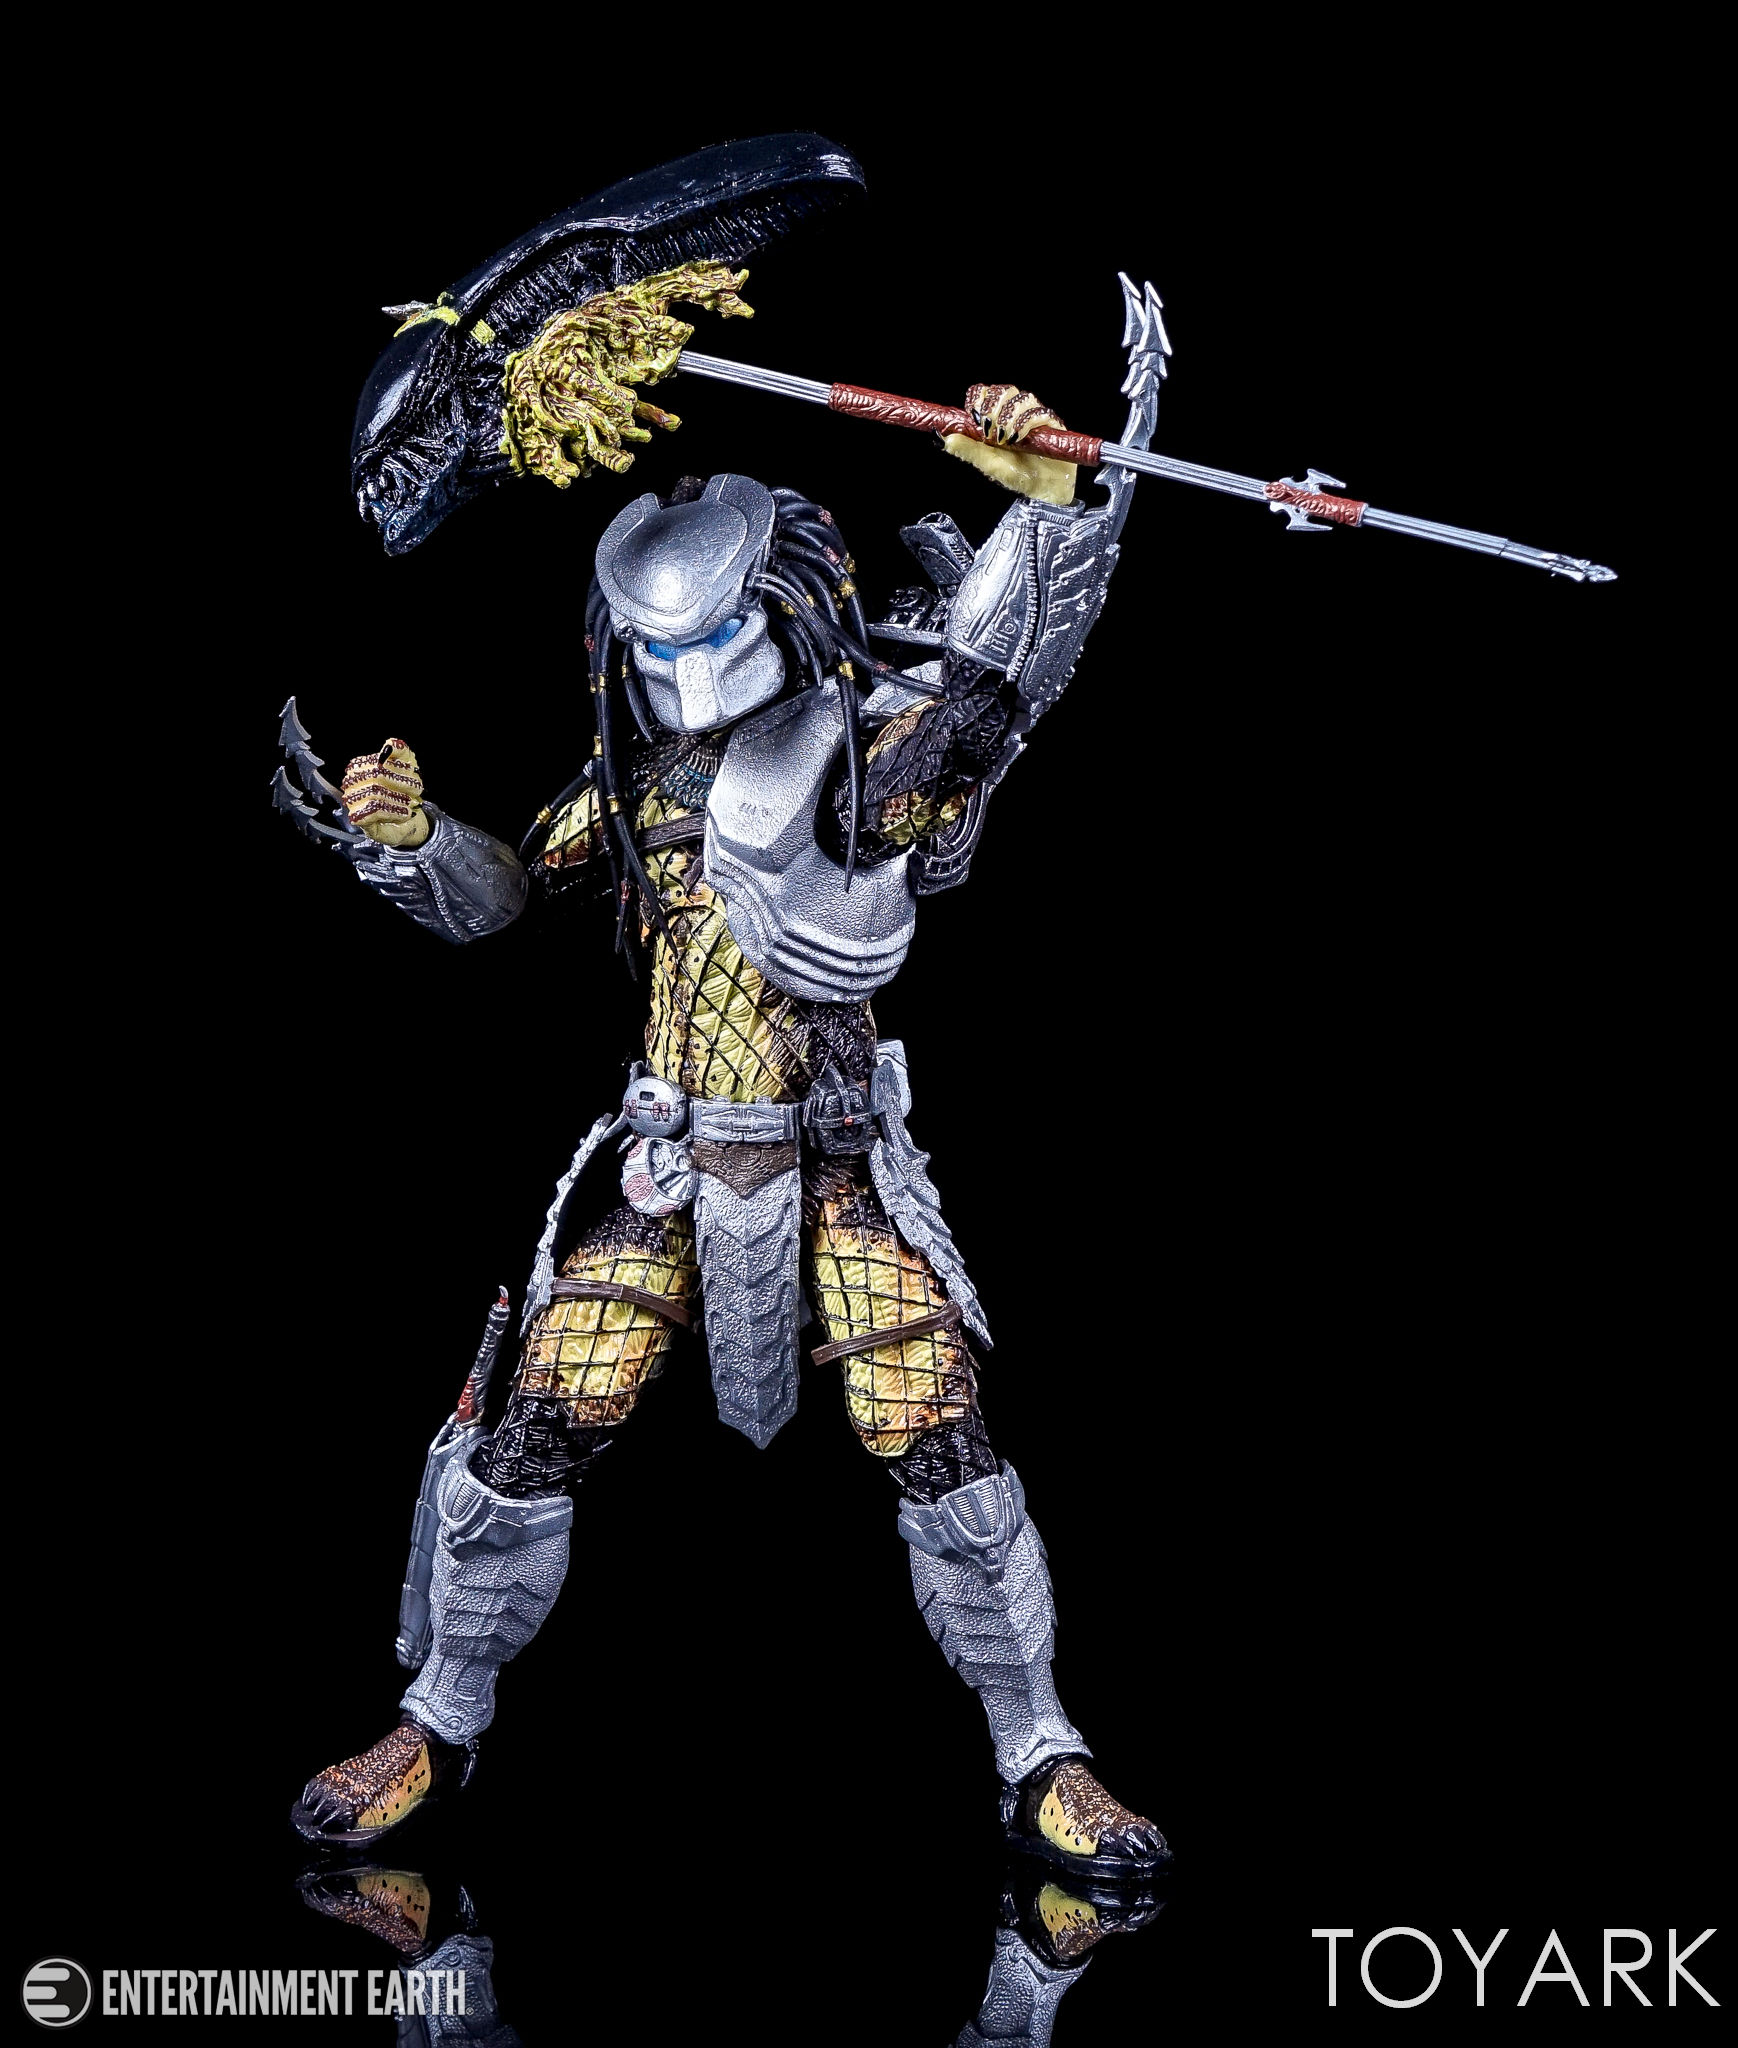 http://news.toyark.com/wp-content/uploads/sites/4/2017/04/NECA-Youngblood-Predator-013.jpg